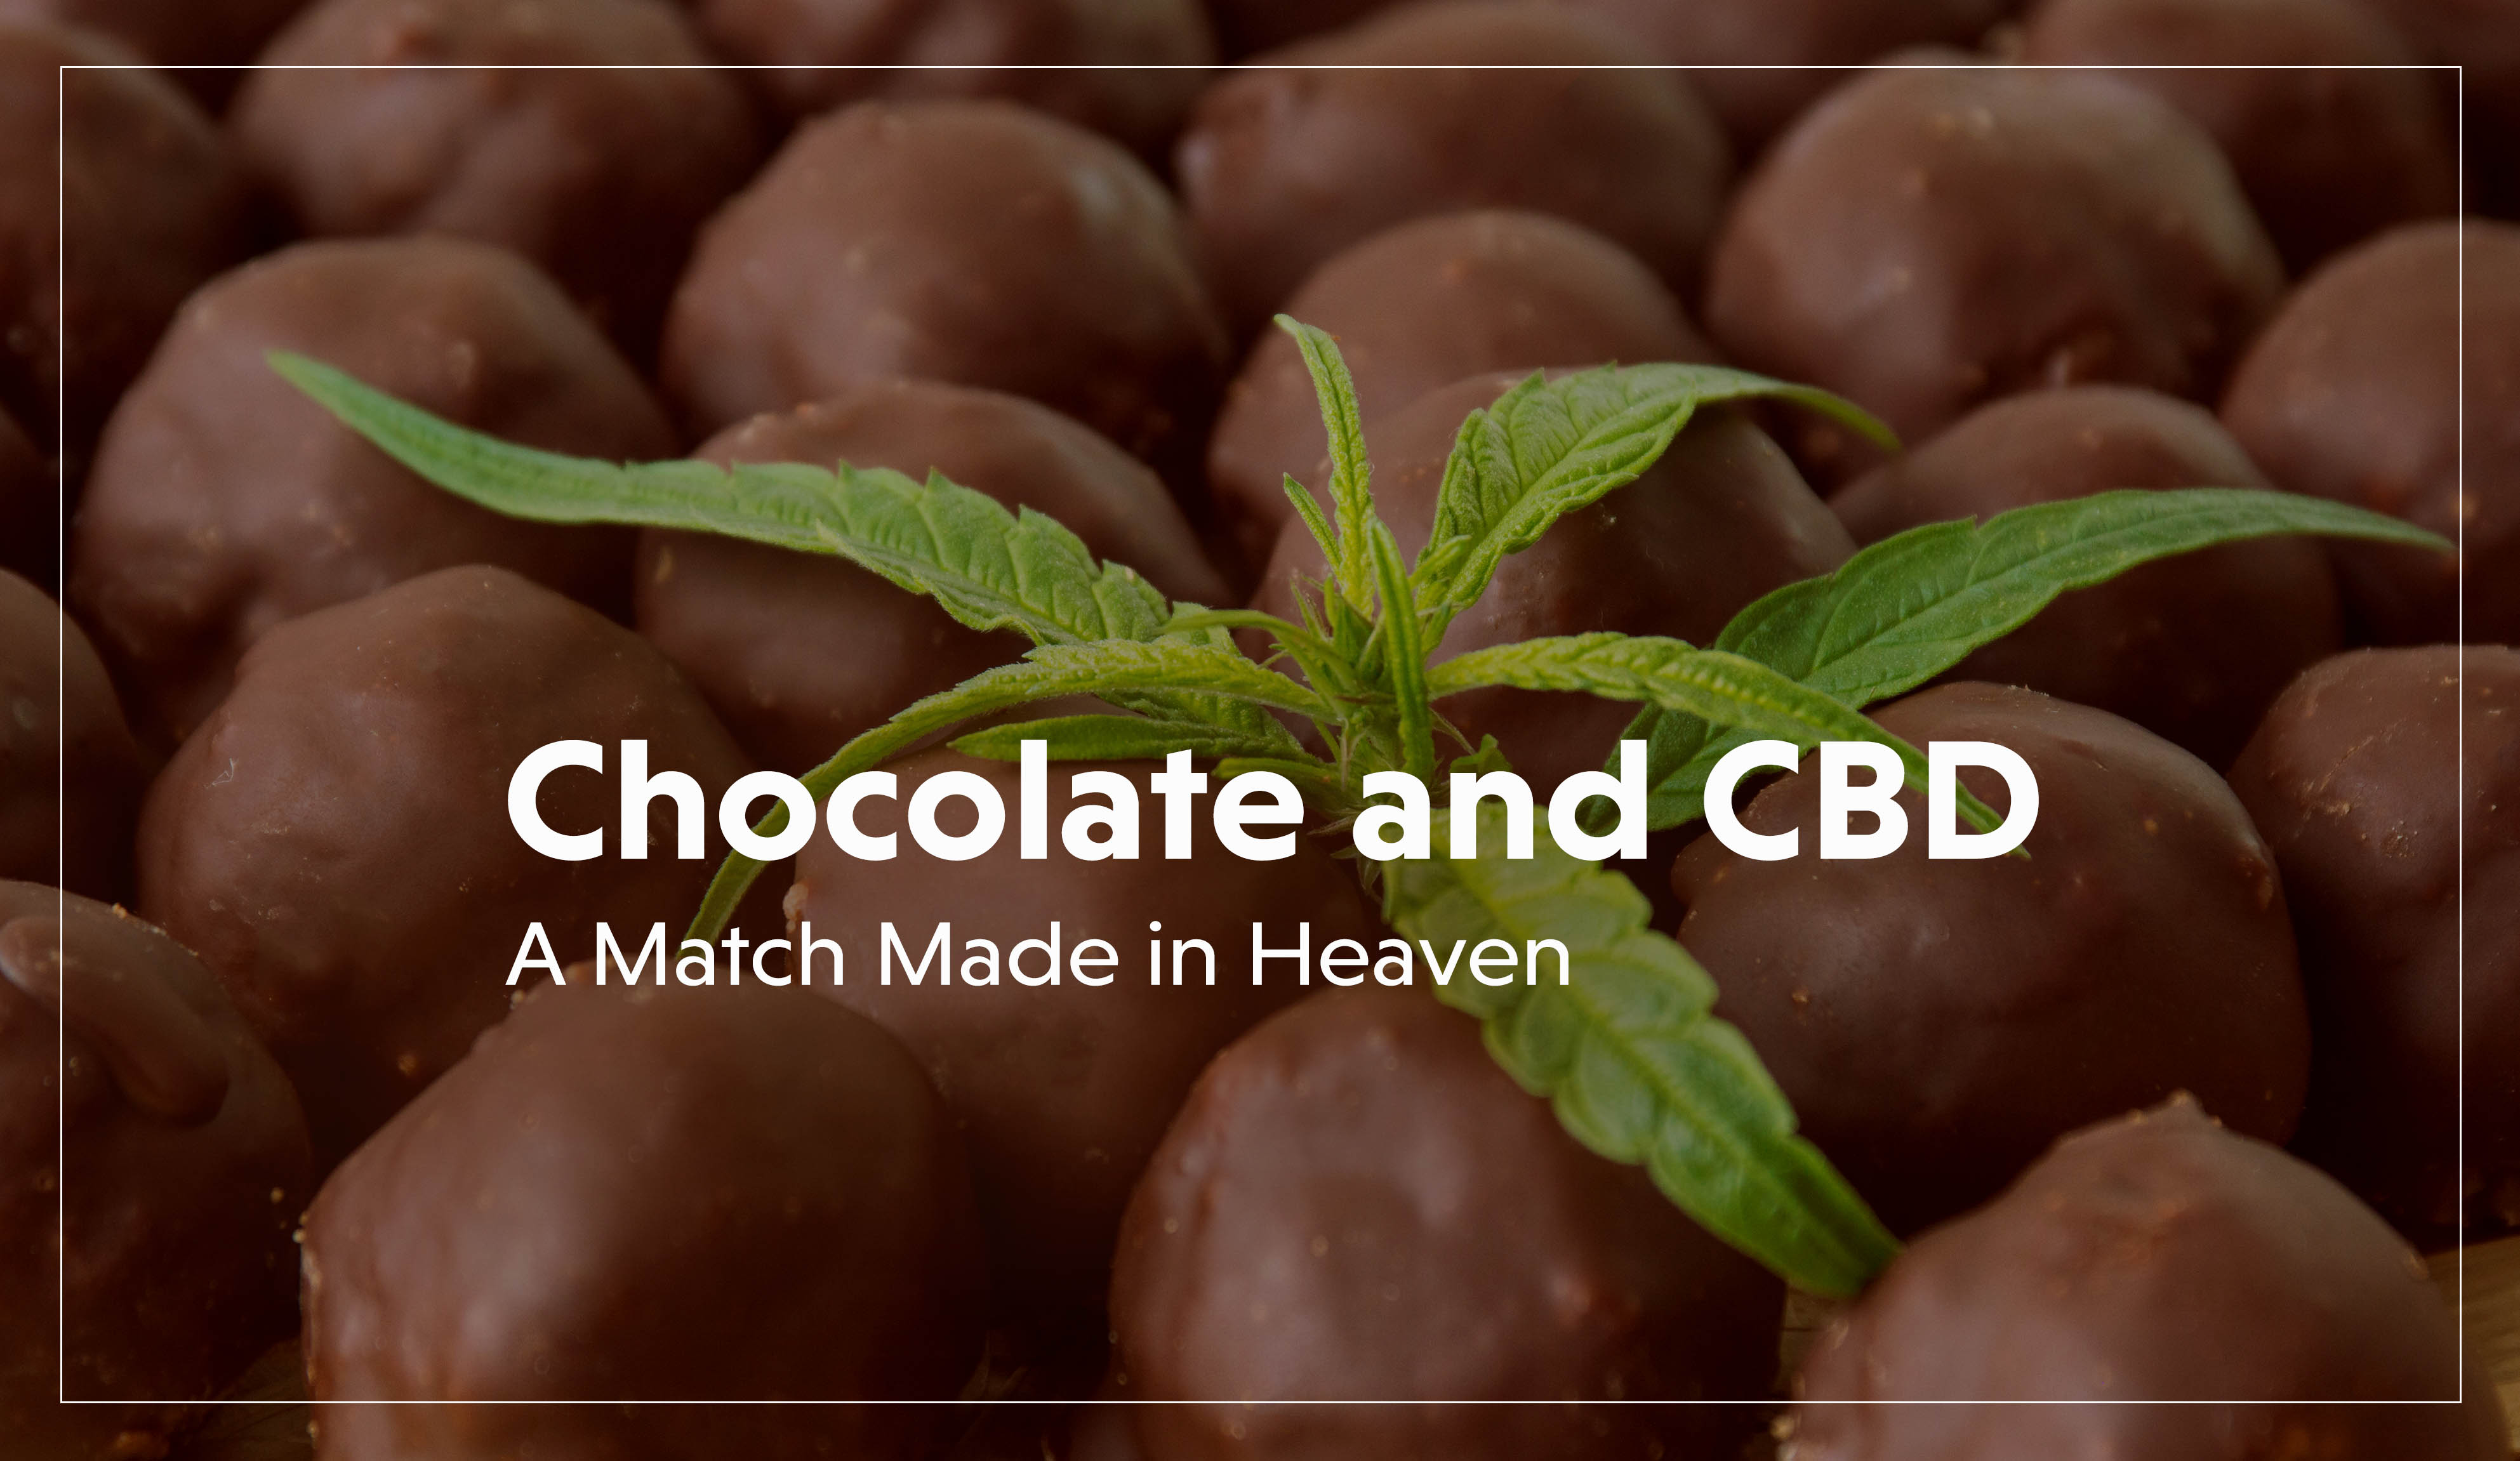 Chocolate and CBD